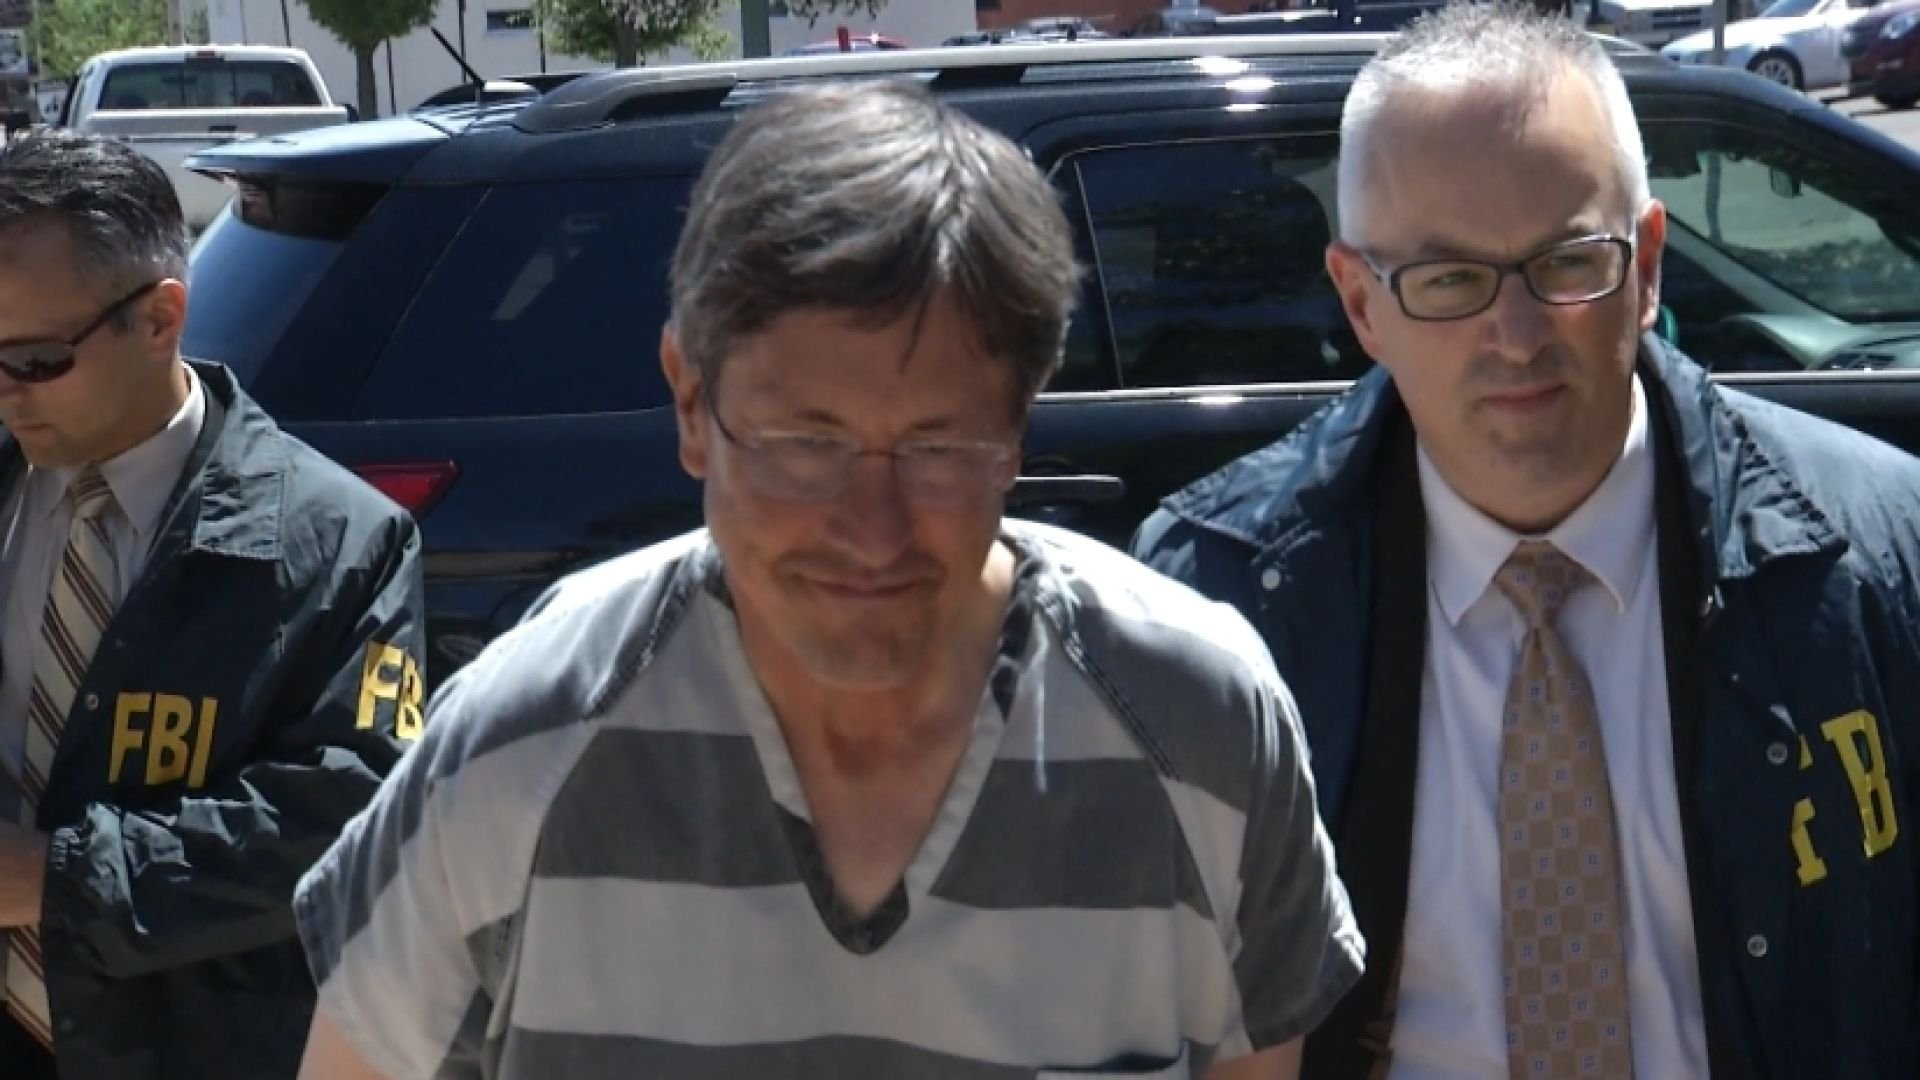 Lyle Jeffs, a polygamous sect leader on the FBI's most wanted list, has been captured in South Dakota.